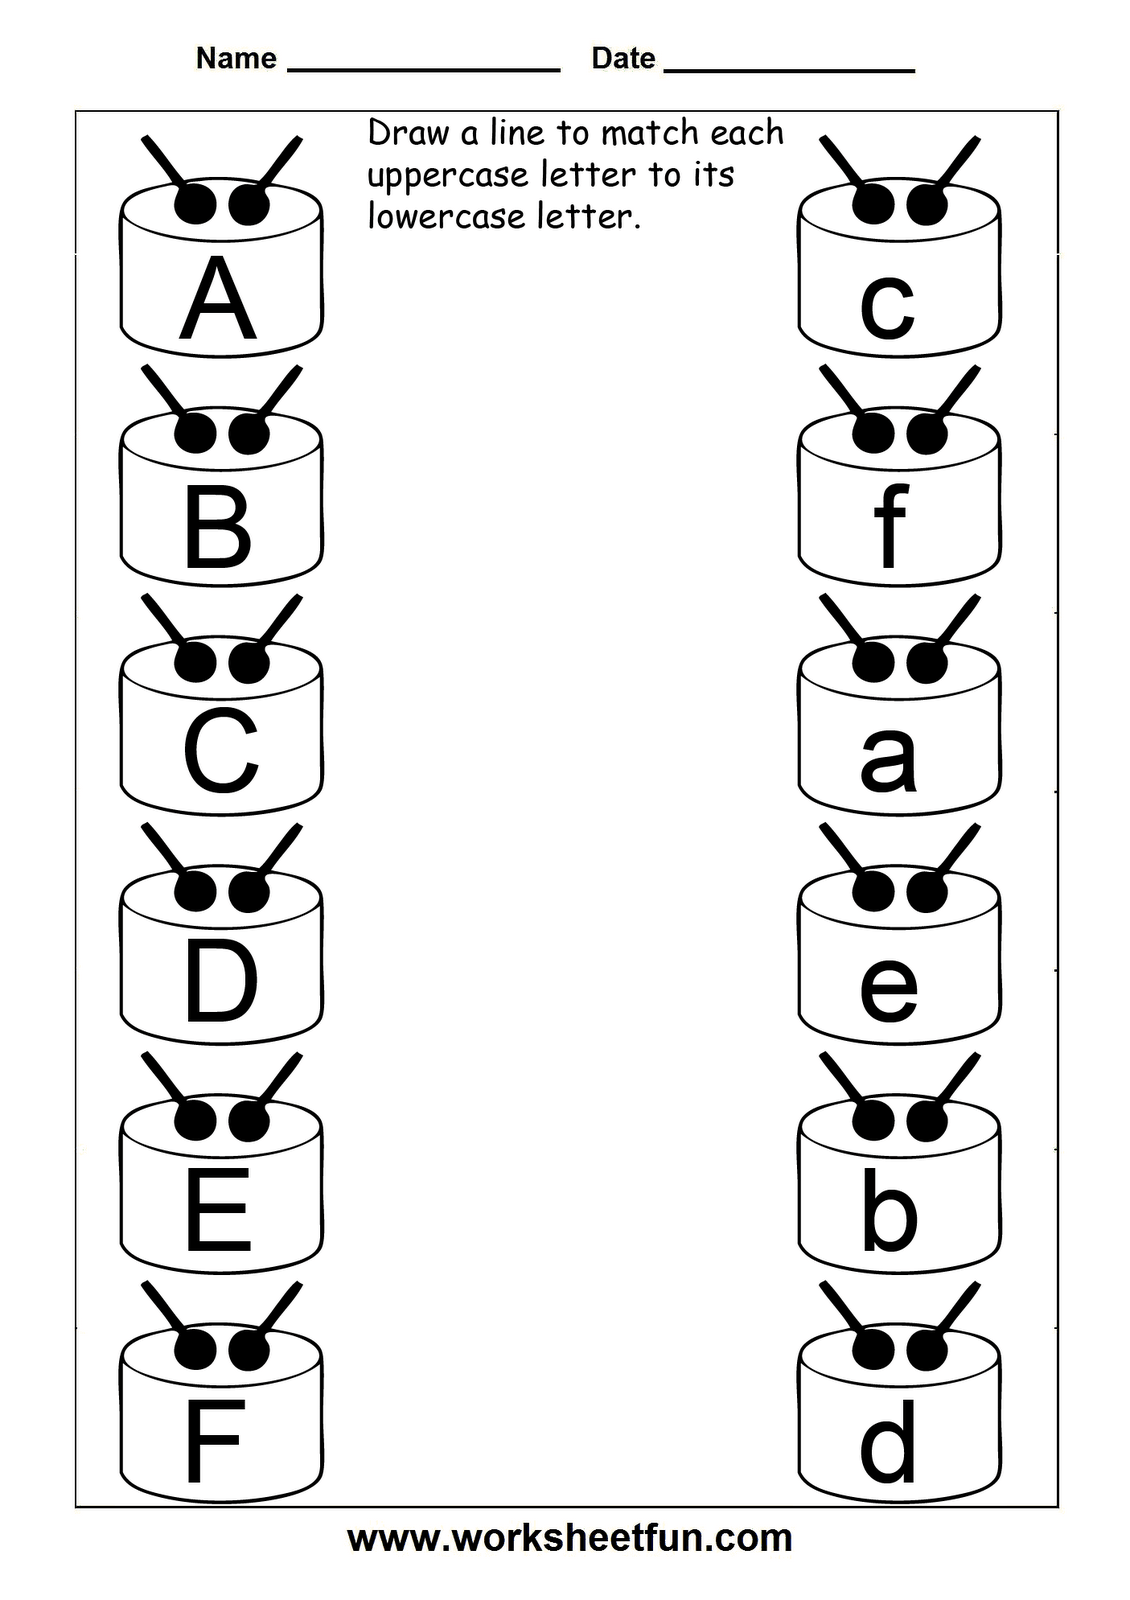 Match Uppercase And Lowercase Letters  11 Worksheets  Free Printable Worksheets  Worksheetfun